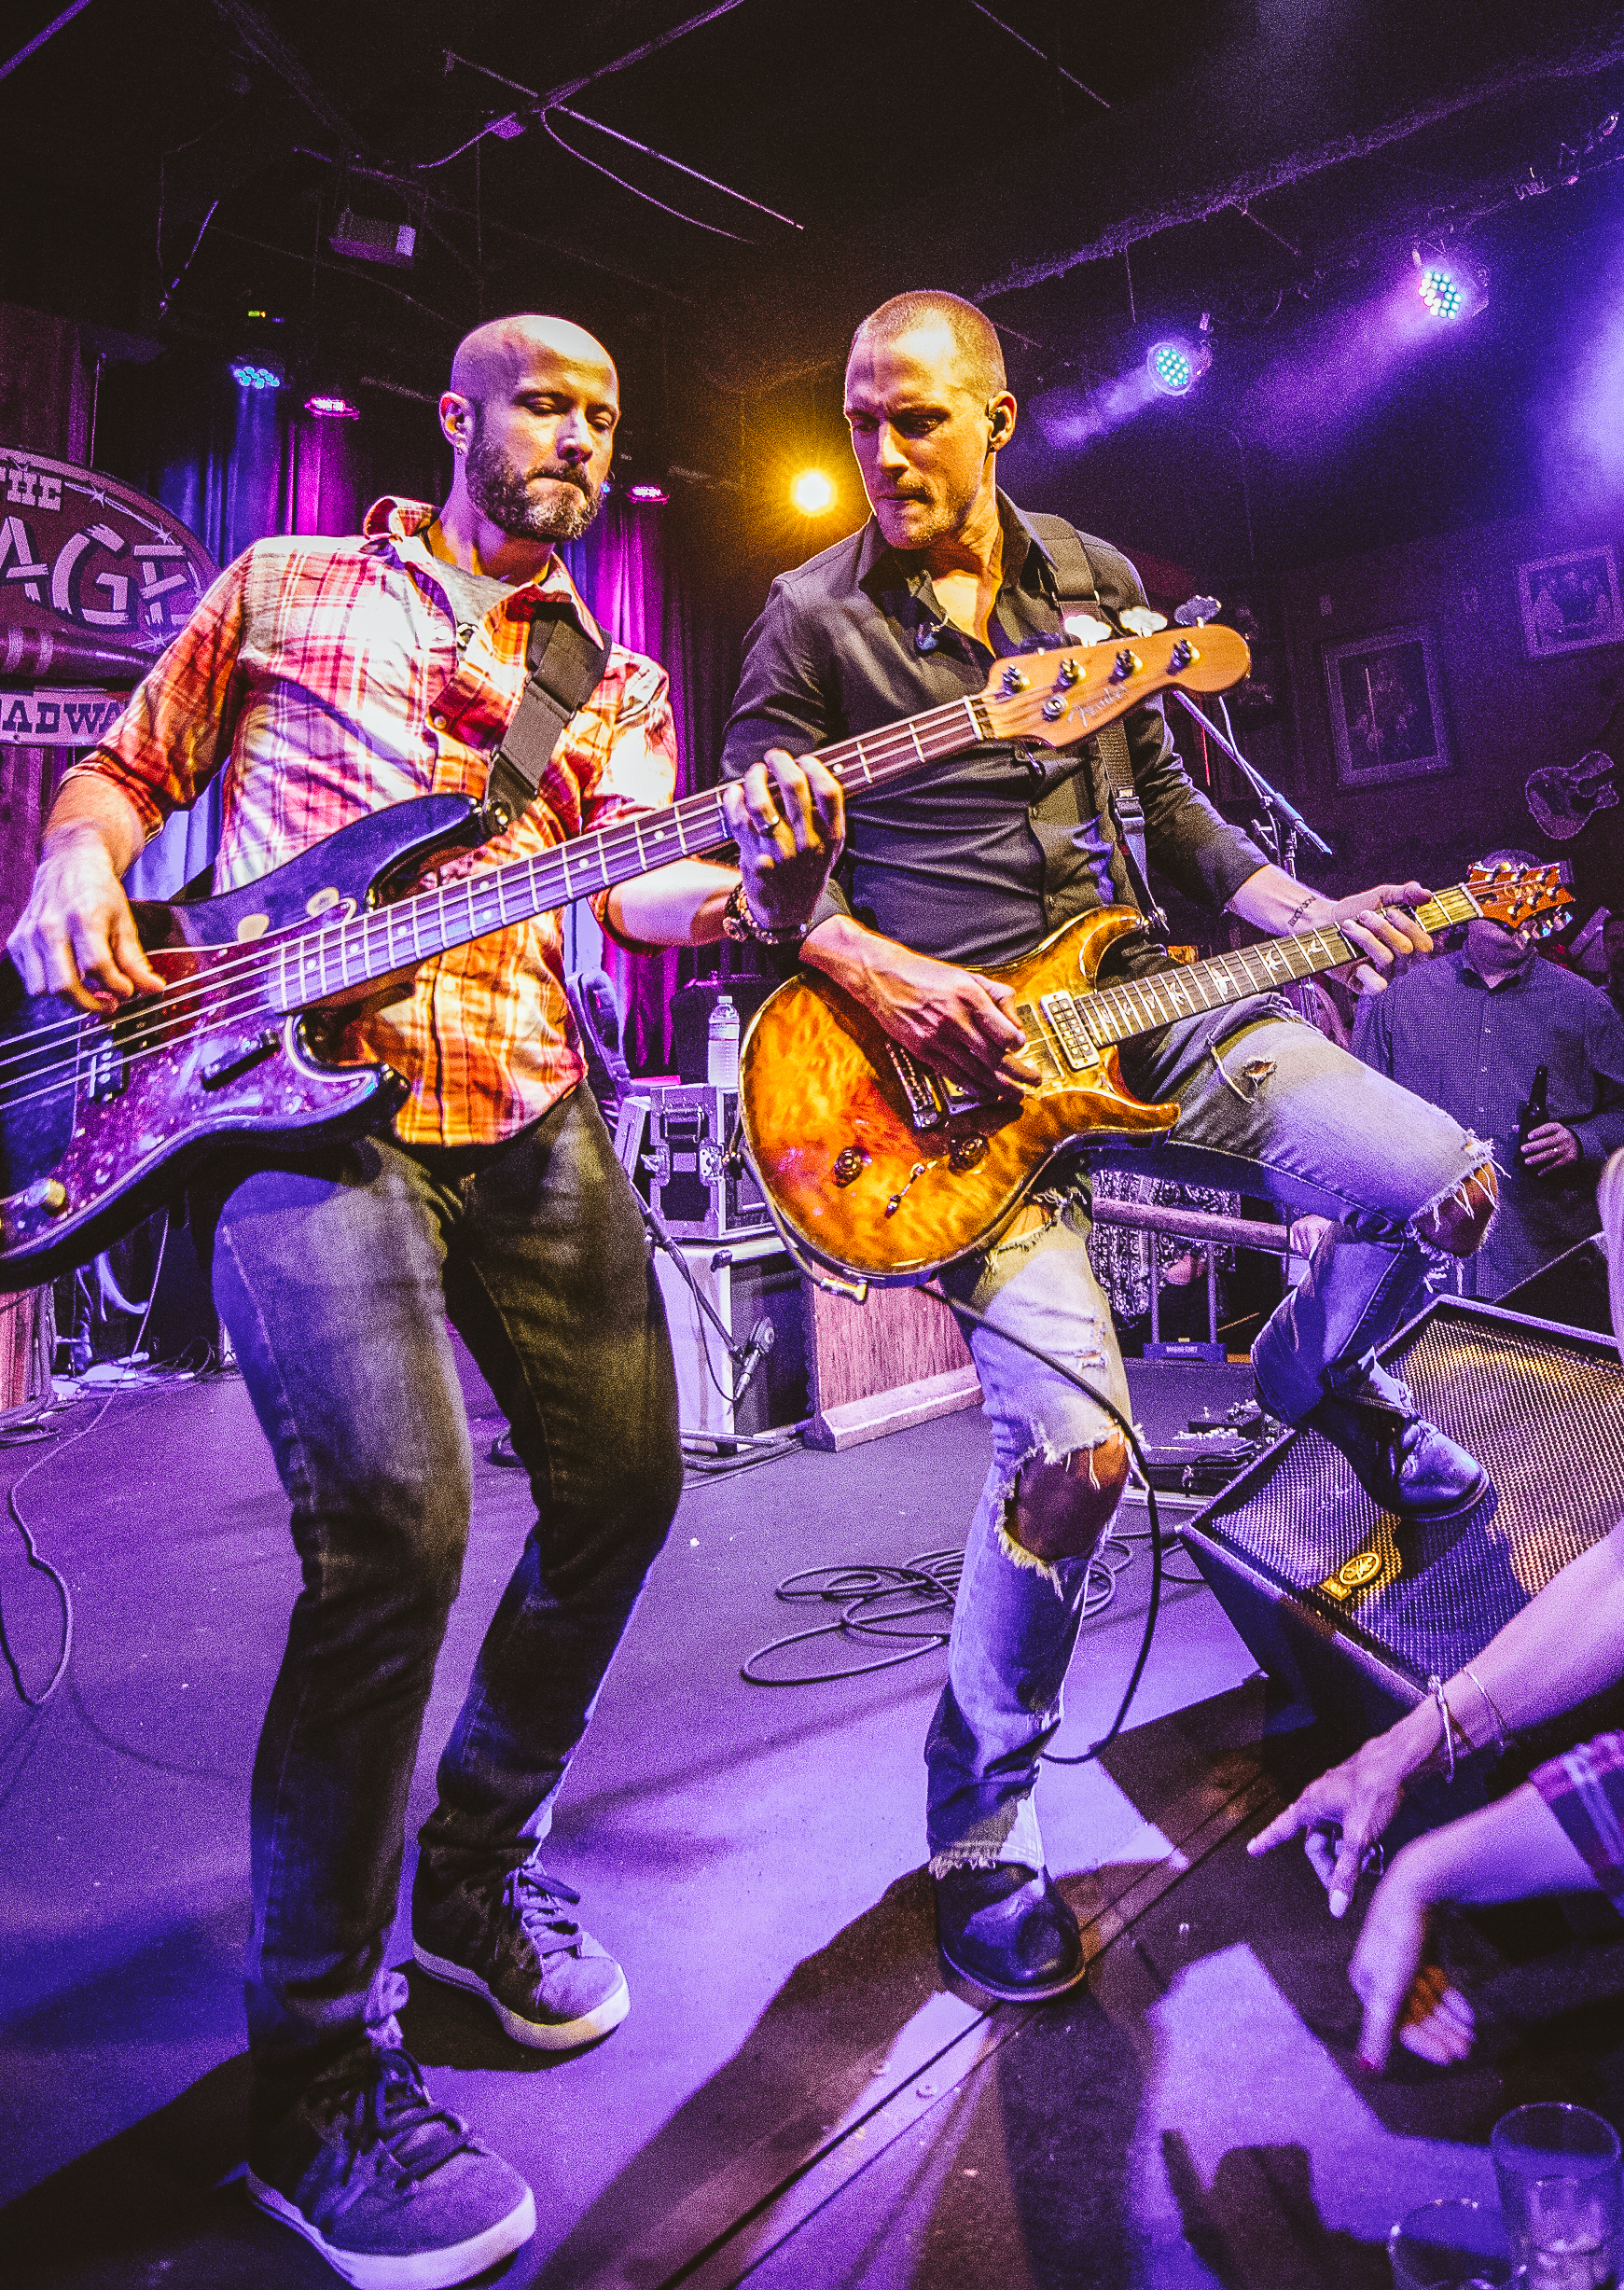 Bassist & guitarist jam out in the Jerry Jacobs Band at the Stage.